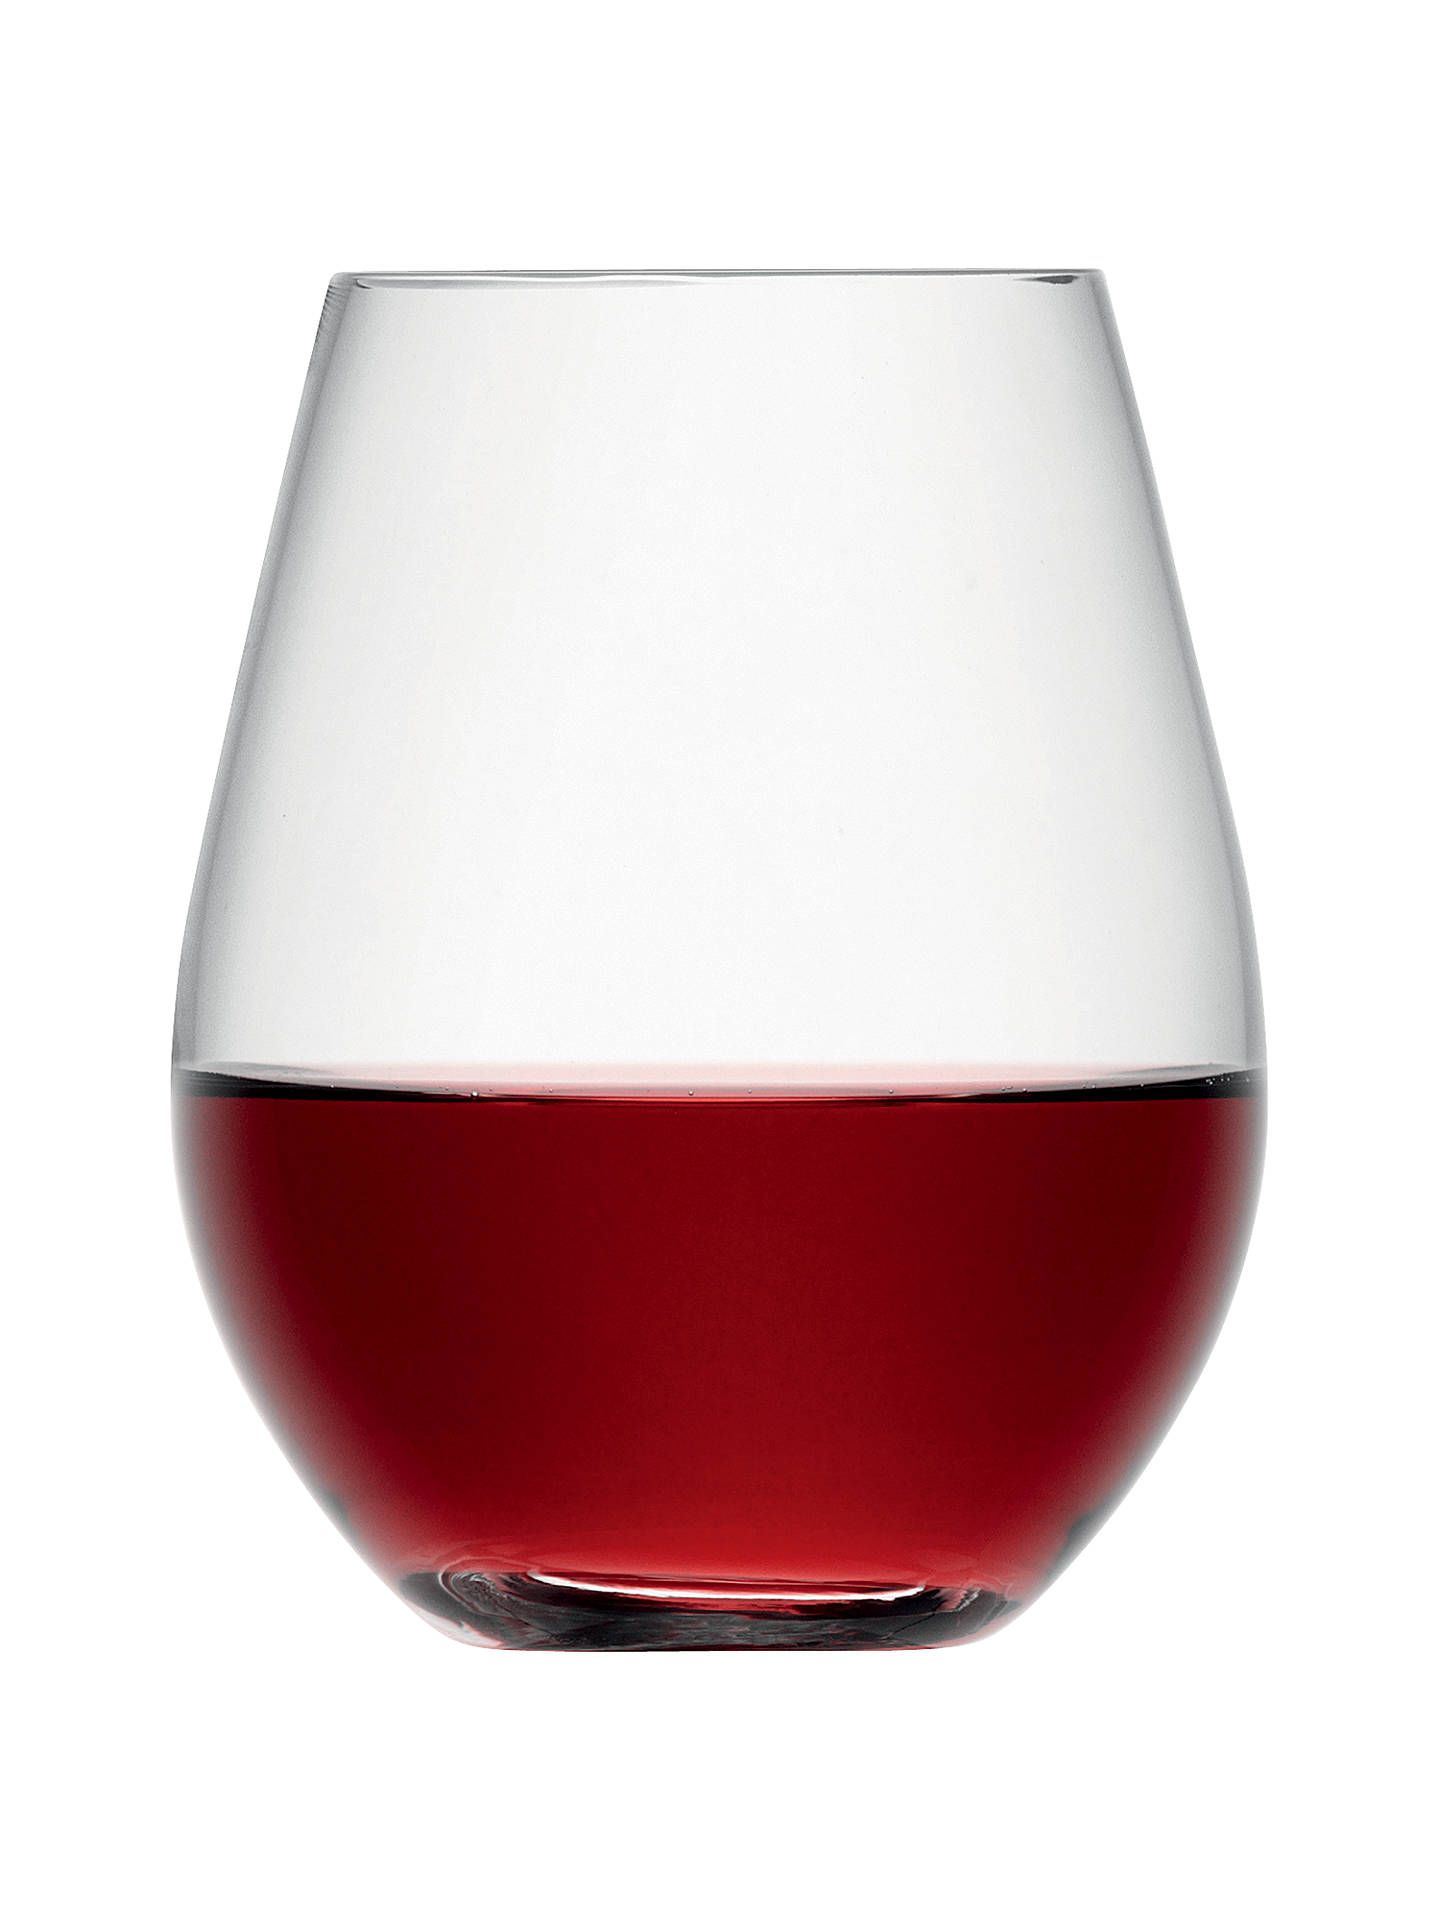 Lsa International Wine Collection Stemless Red Wine Glasses 530ml Set Of 4 In 2020 Wine Collection Red Wine Glasses Wine Glassware